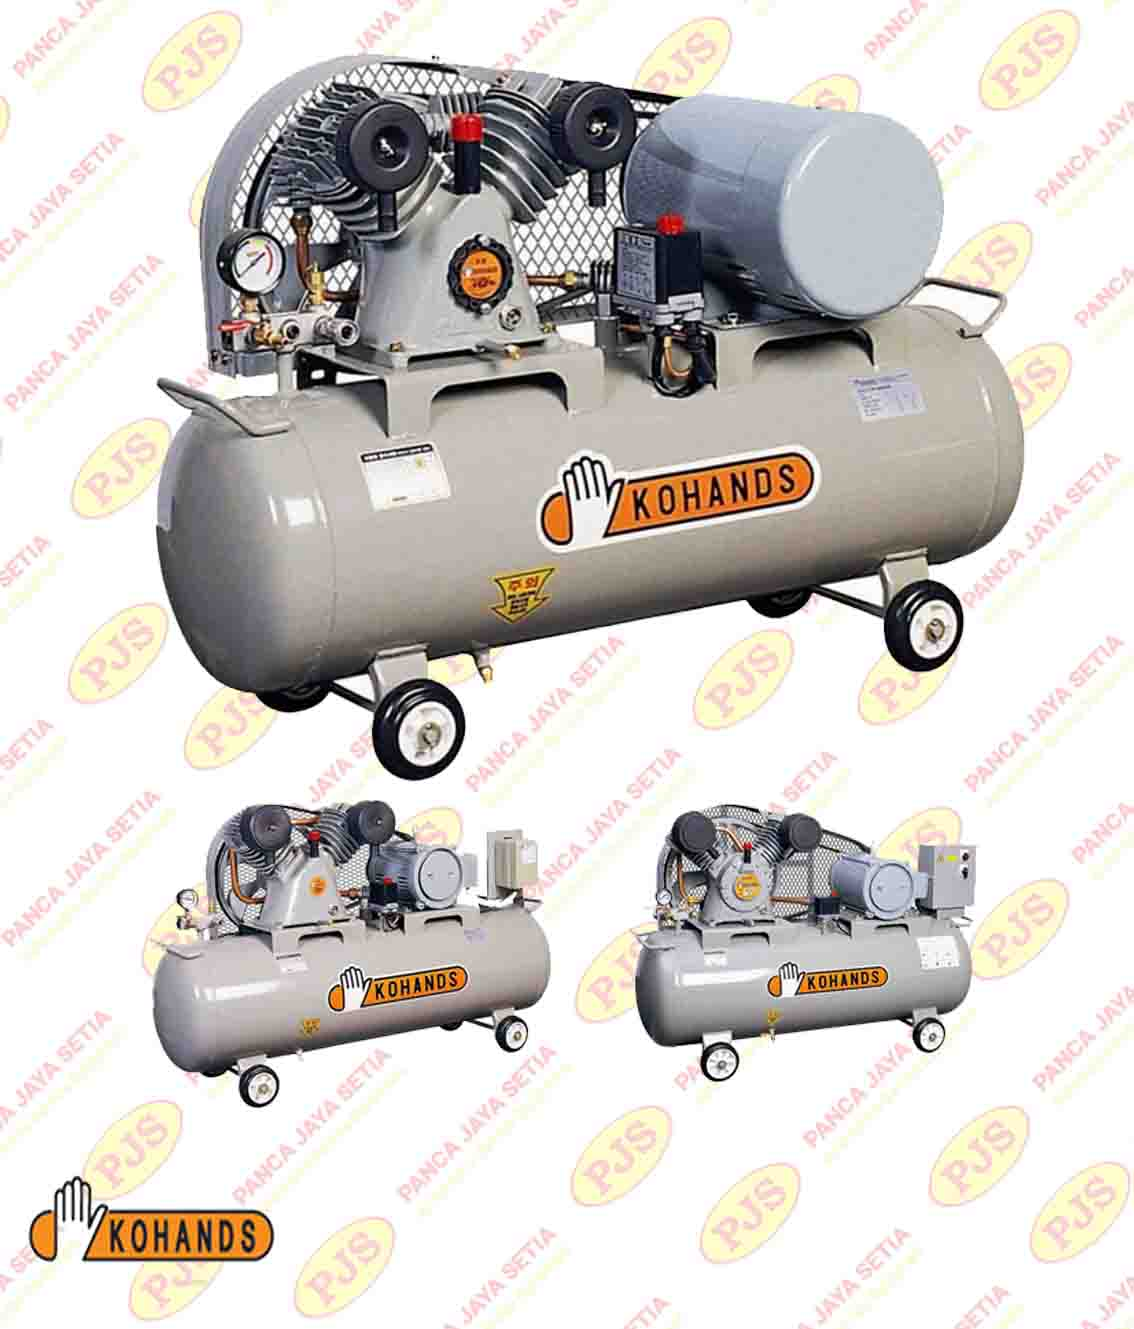 Air Compressor Kohands